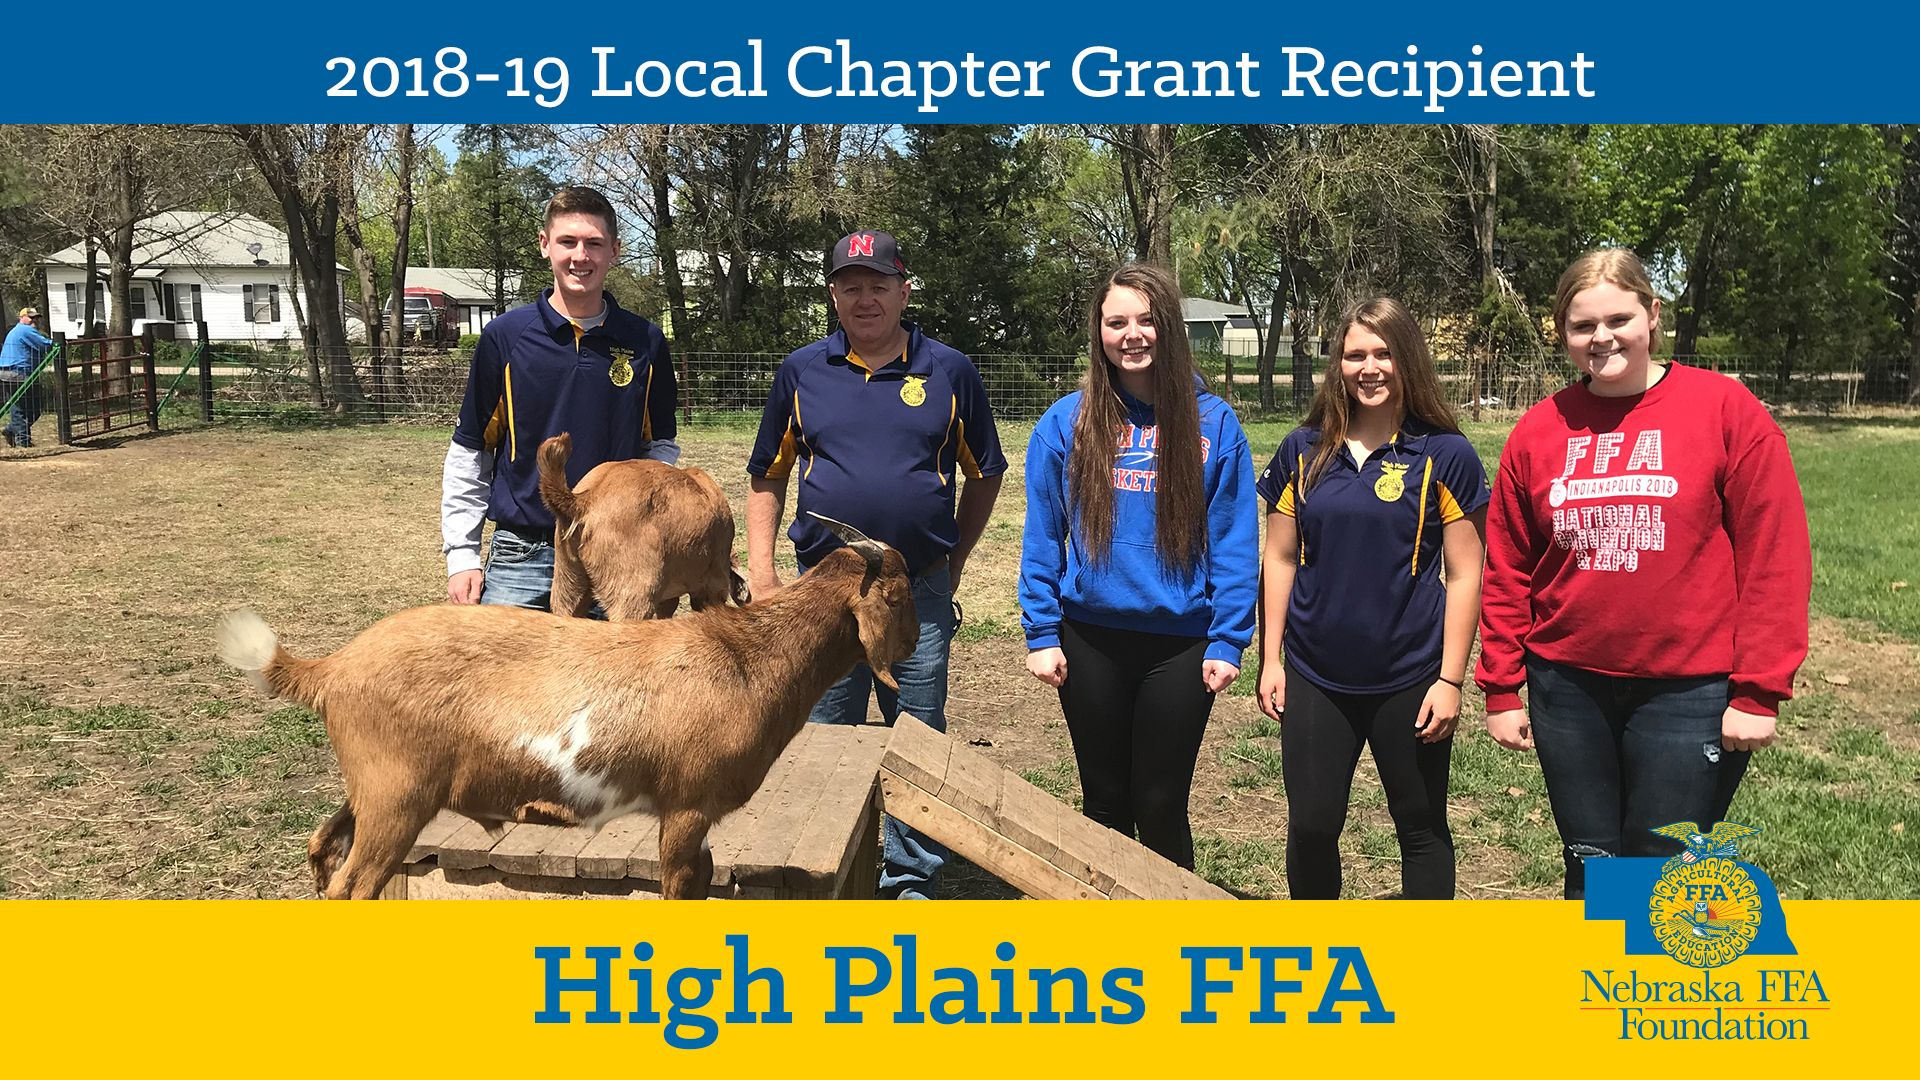 2018-19 Local Chapter Grant Video: High Plains